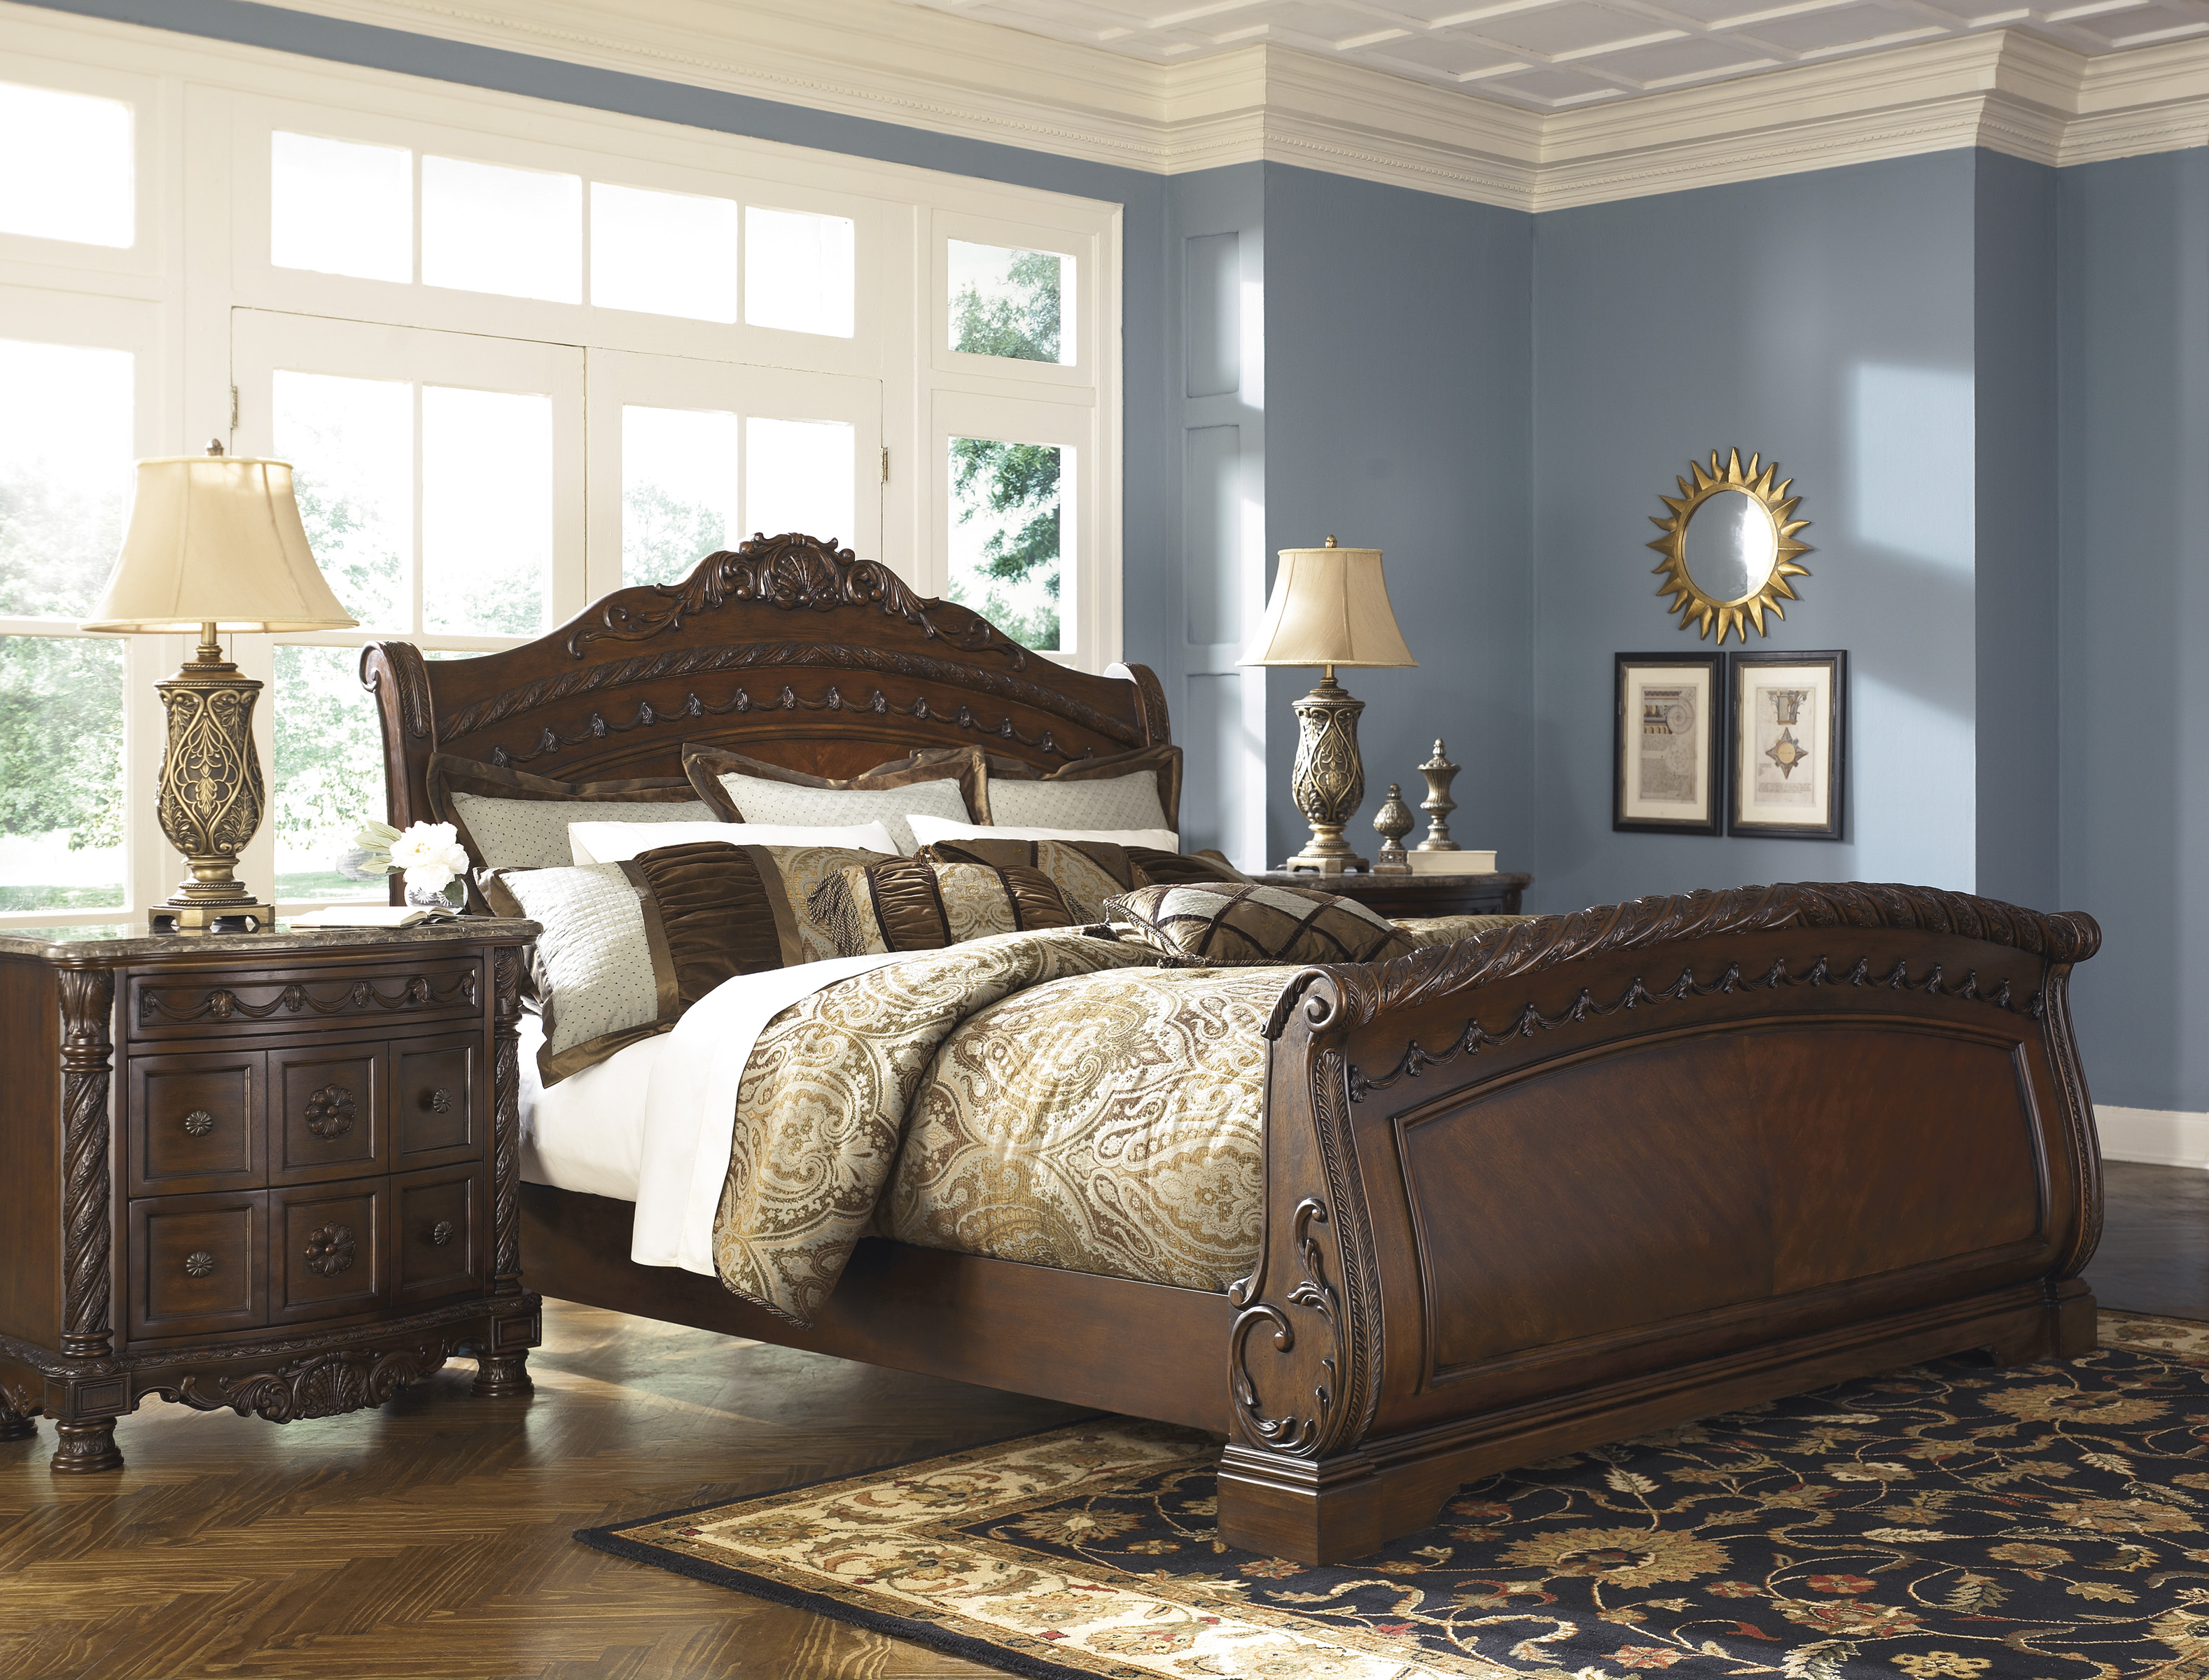 Epic Furniture: Ashley Furniture Porter Bedroom Suite | Ashley Furniture throughout Ashley Furniture Locations